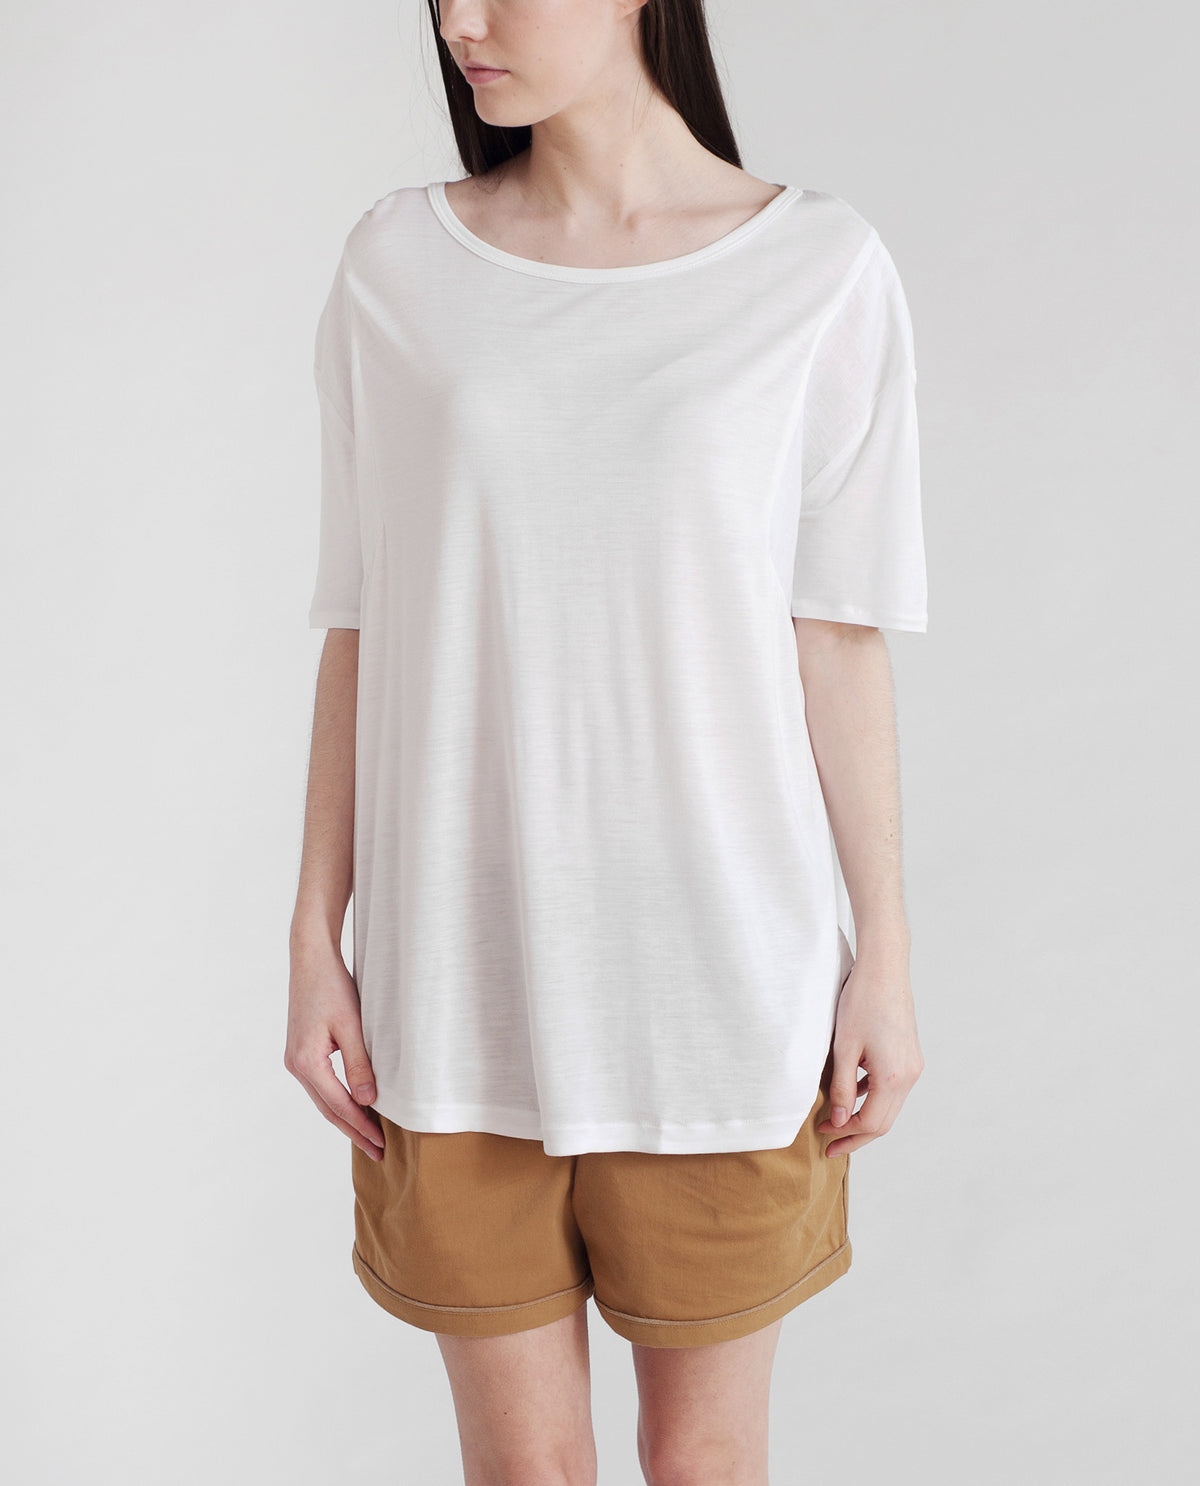 JACINTA Bamboo And Linen Top